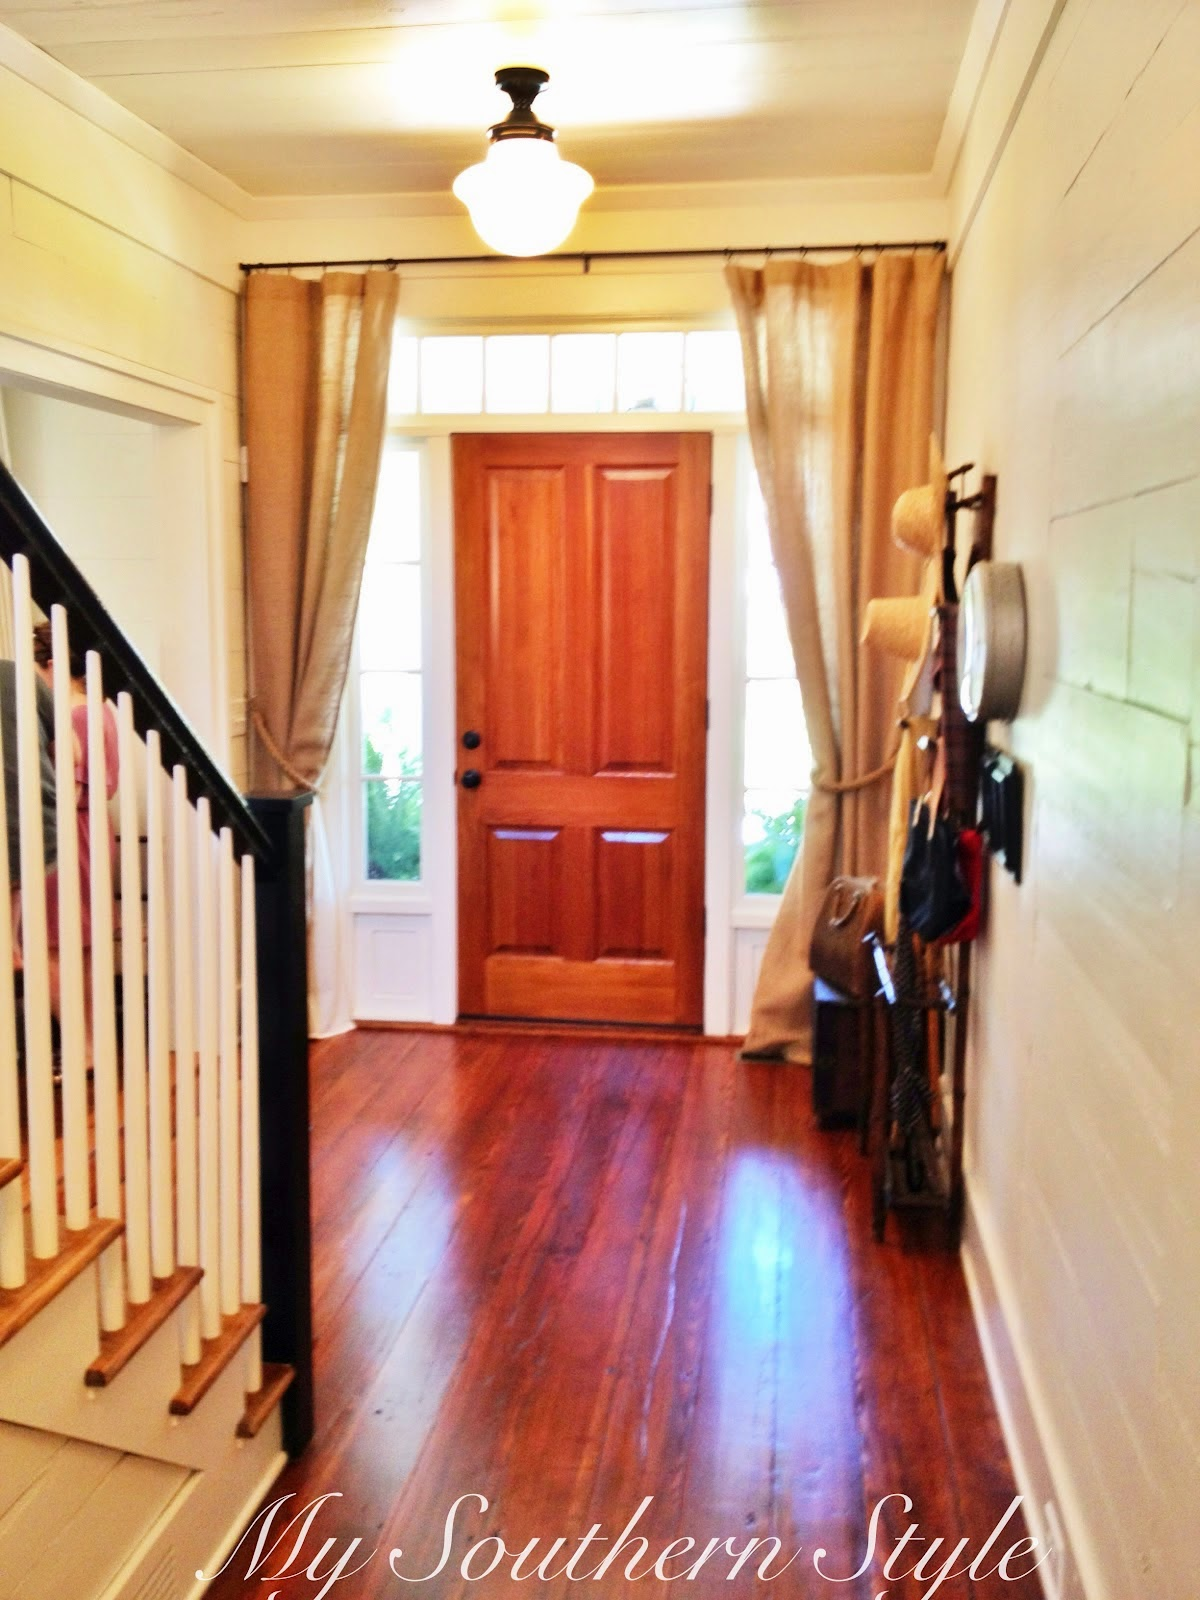 Is A Staircase Facing the Front Door Bad Feng Shui?